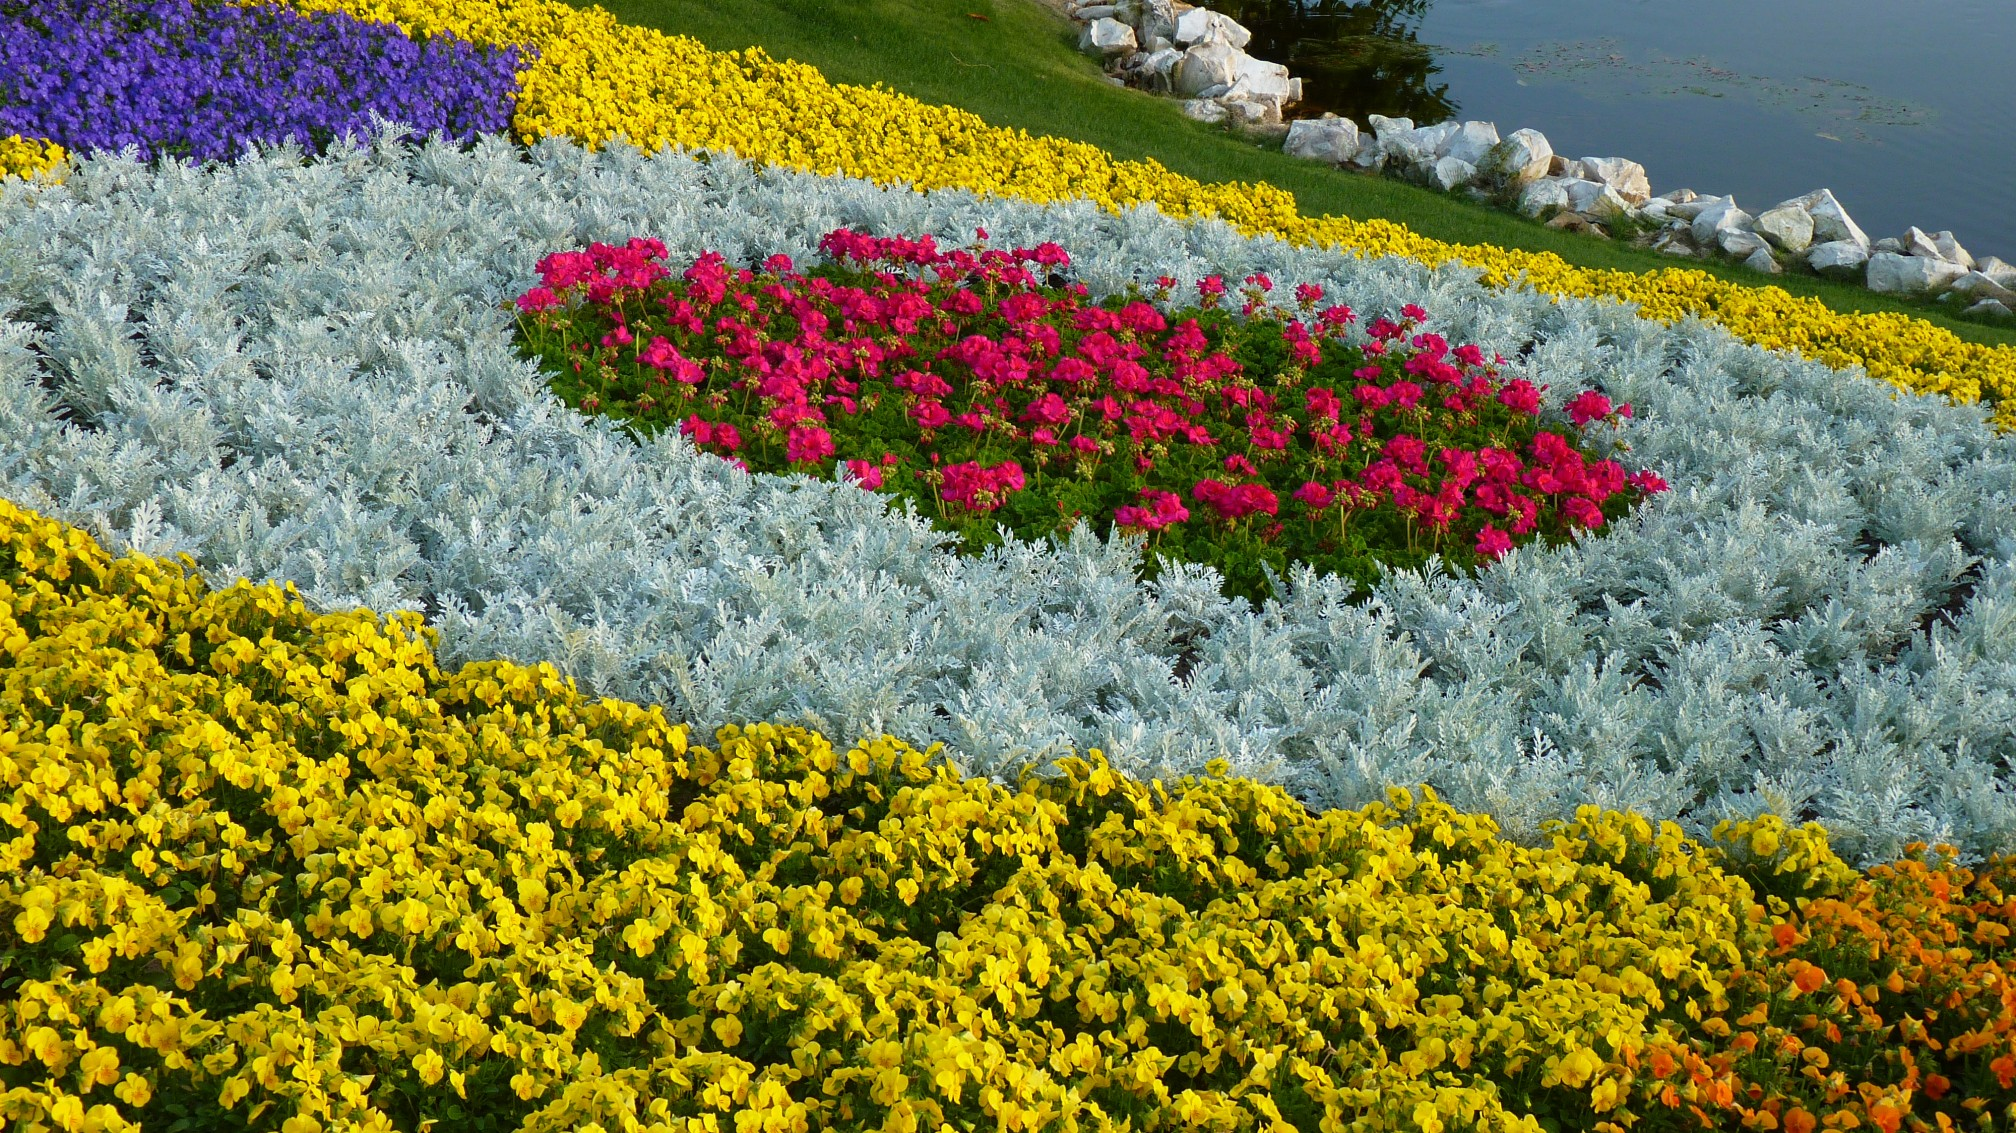 Jud's Disney Picture of the Day: FLOWER BED - Zannaland